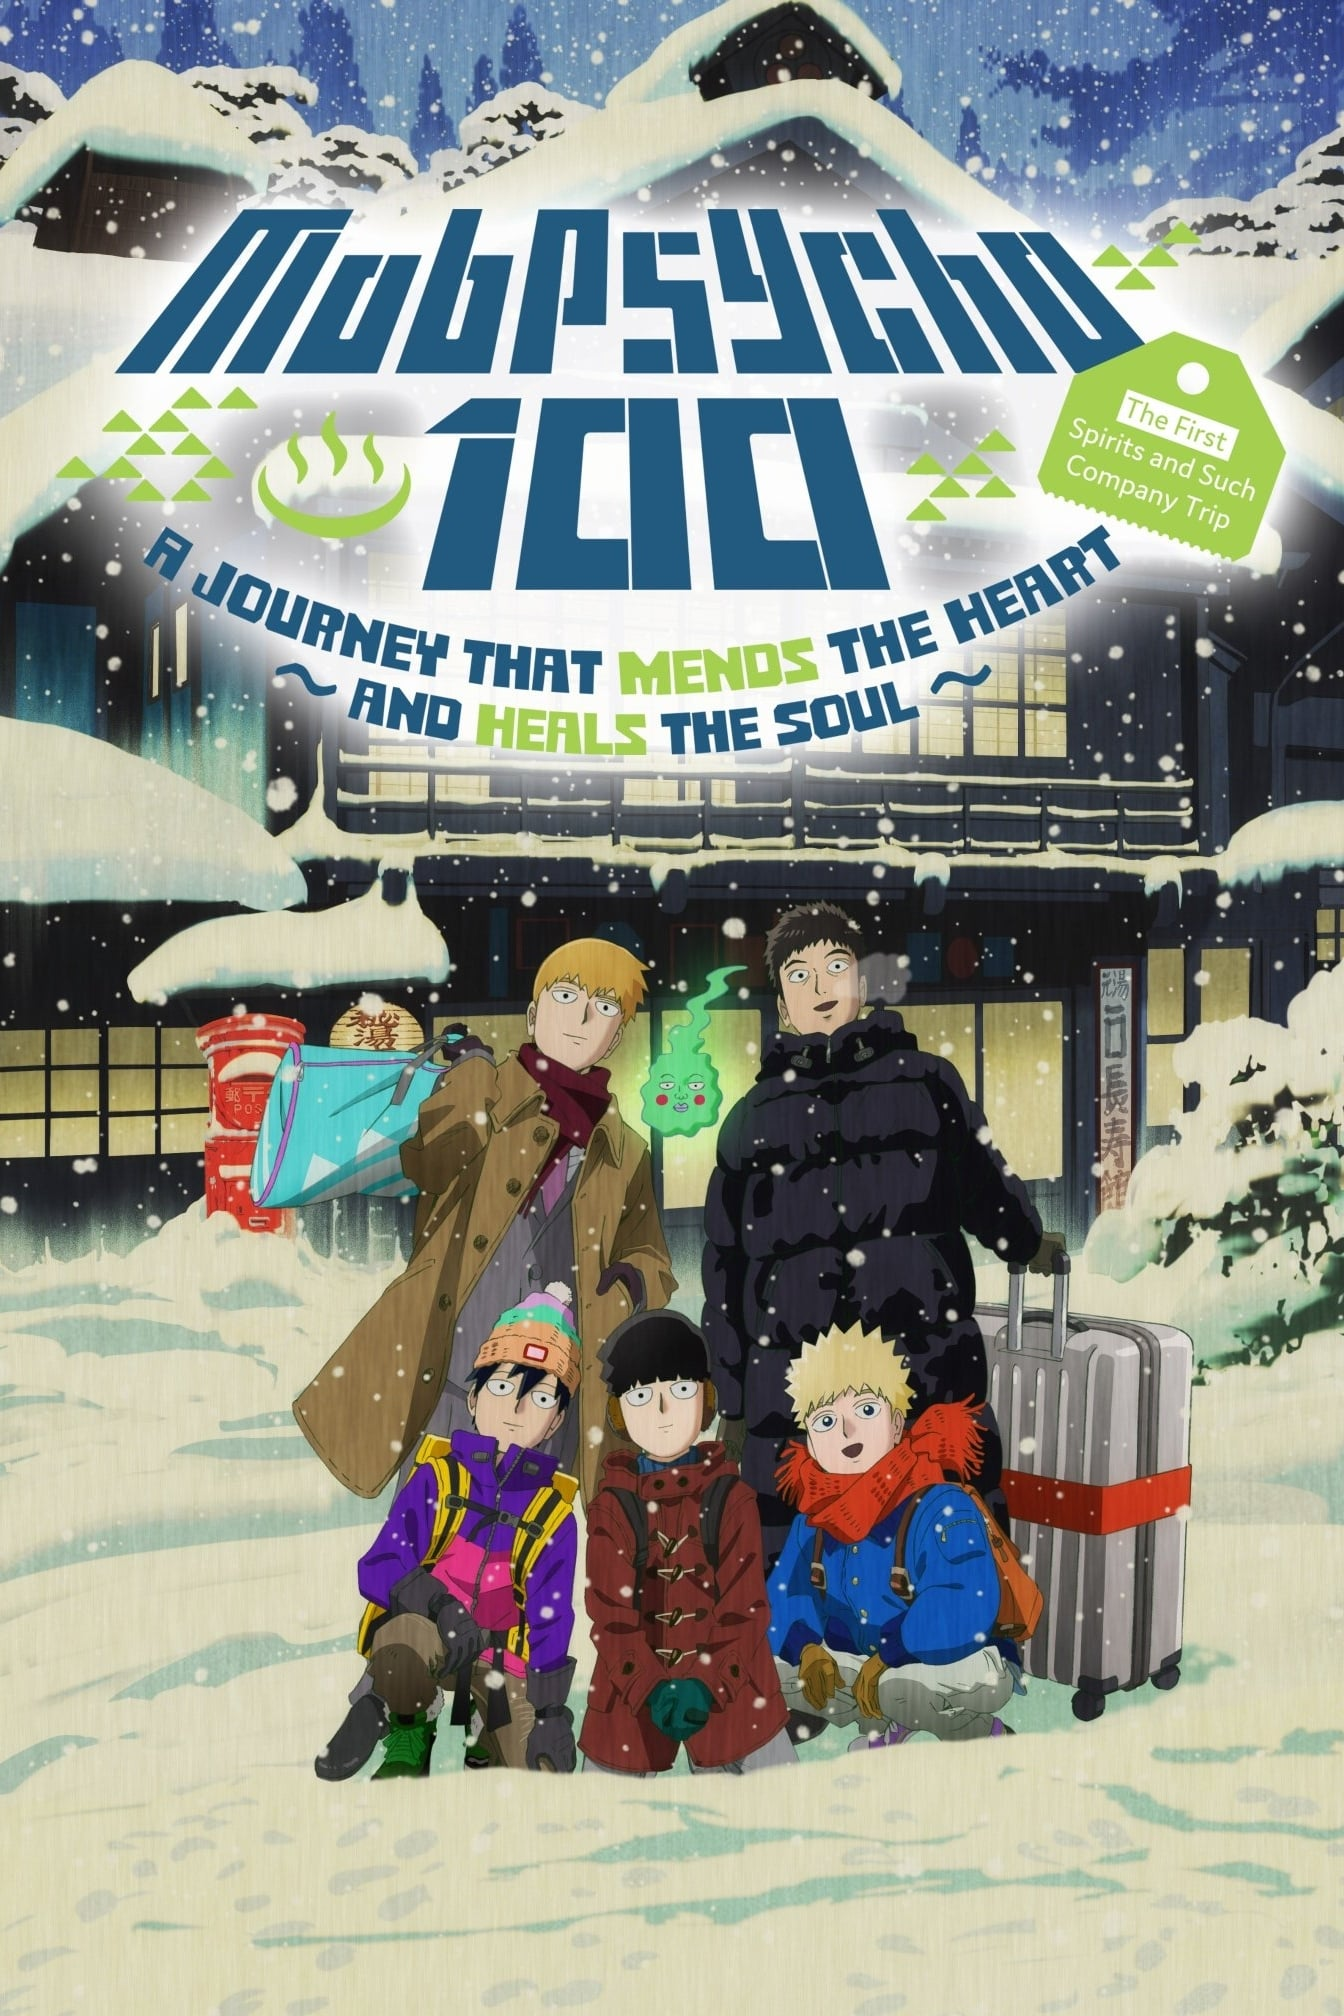 Mob Psycho 100 II: The First Spirits and Such Company Trip - A Journey that Mends the Heart and Heals the Soul (2019)